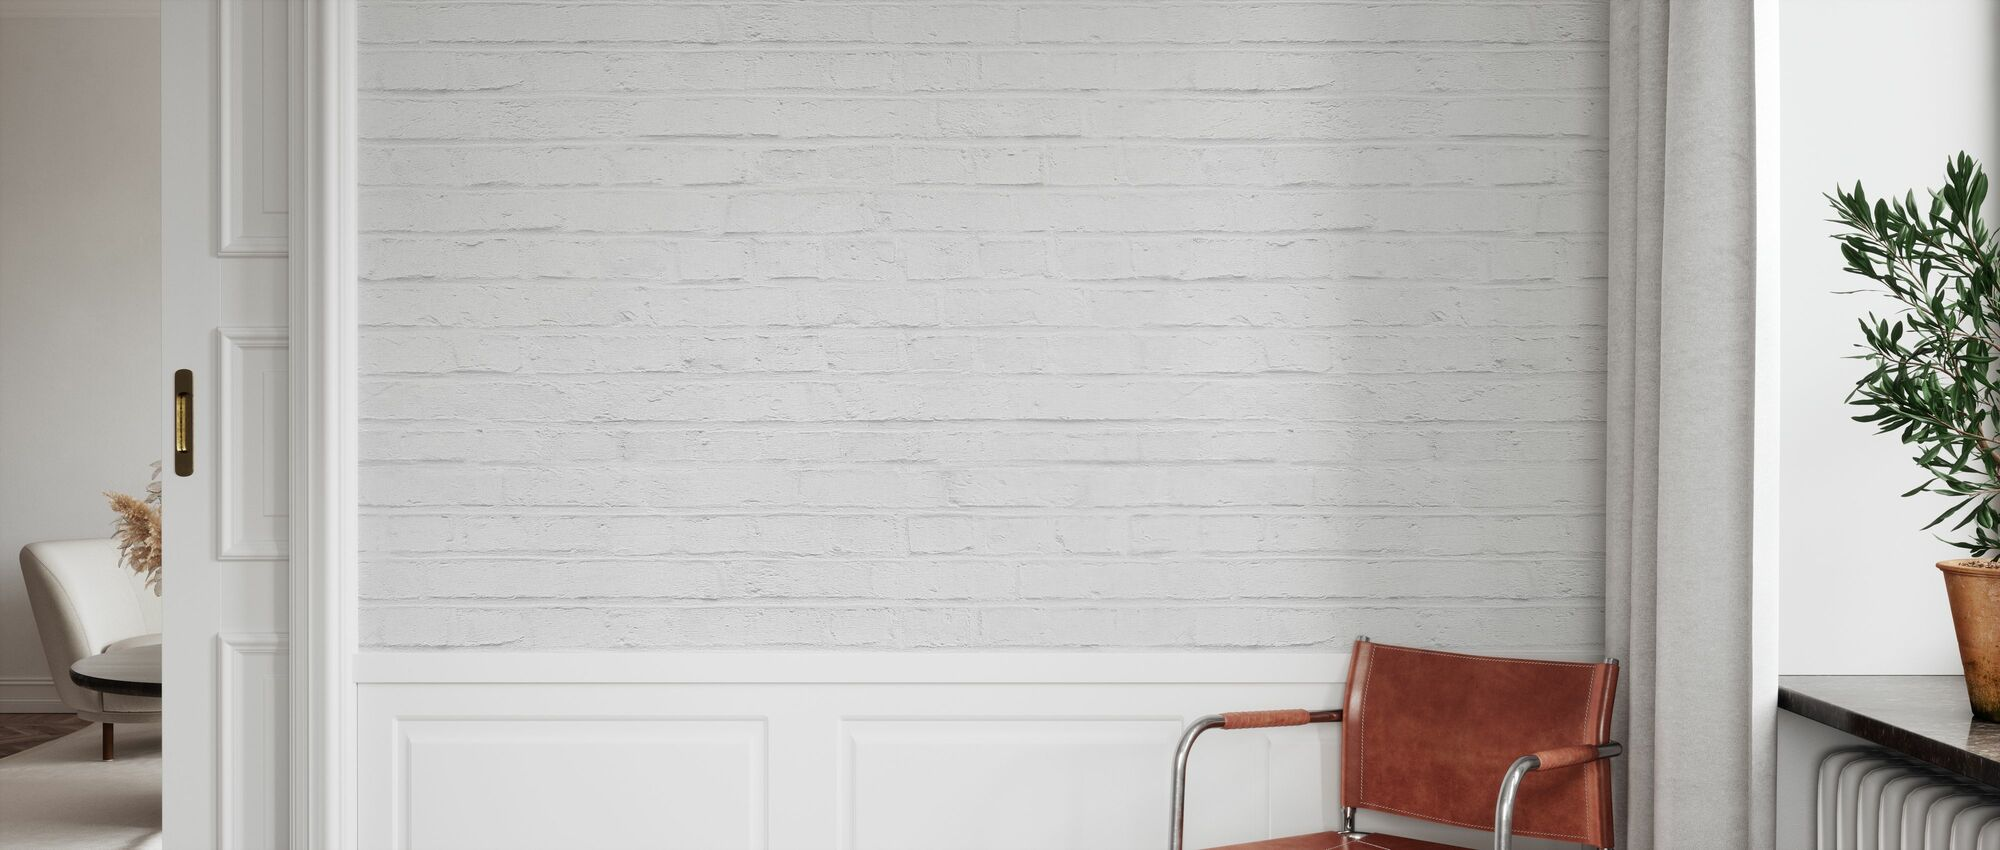 White Brickwall - Wallpaper - Hallway